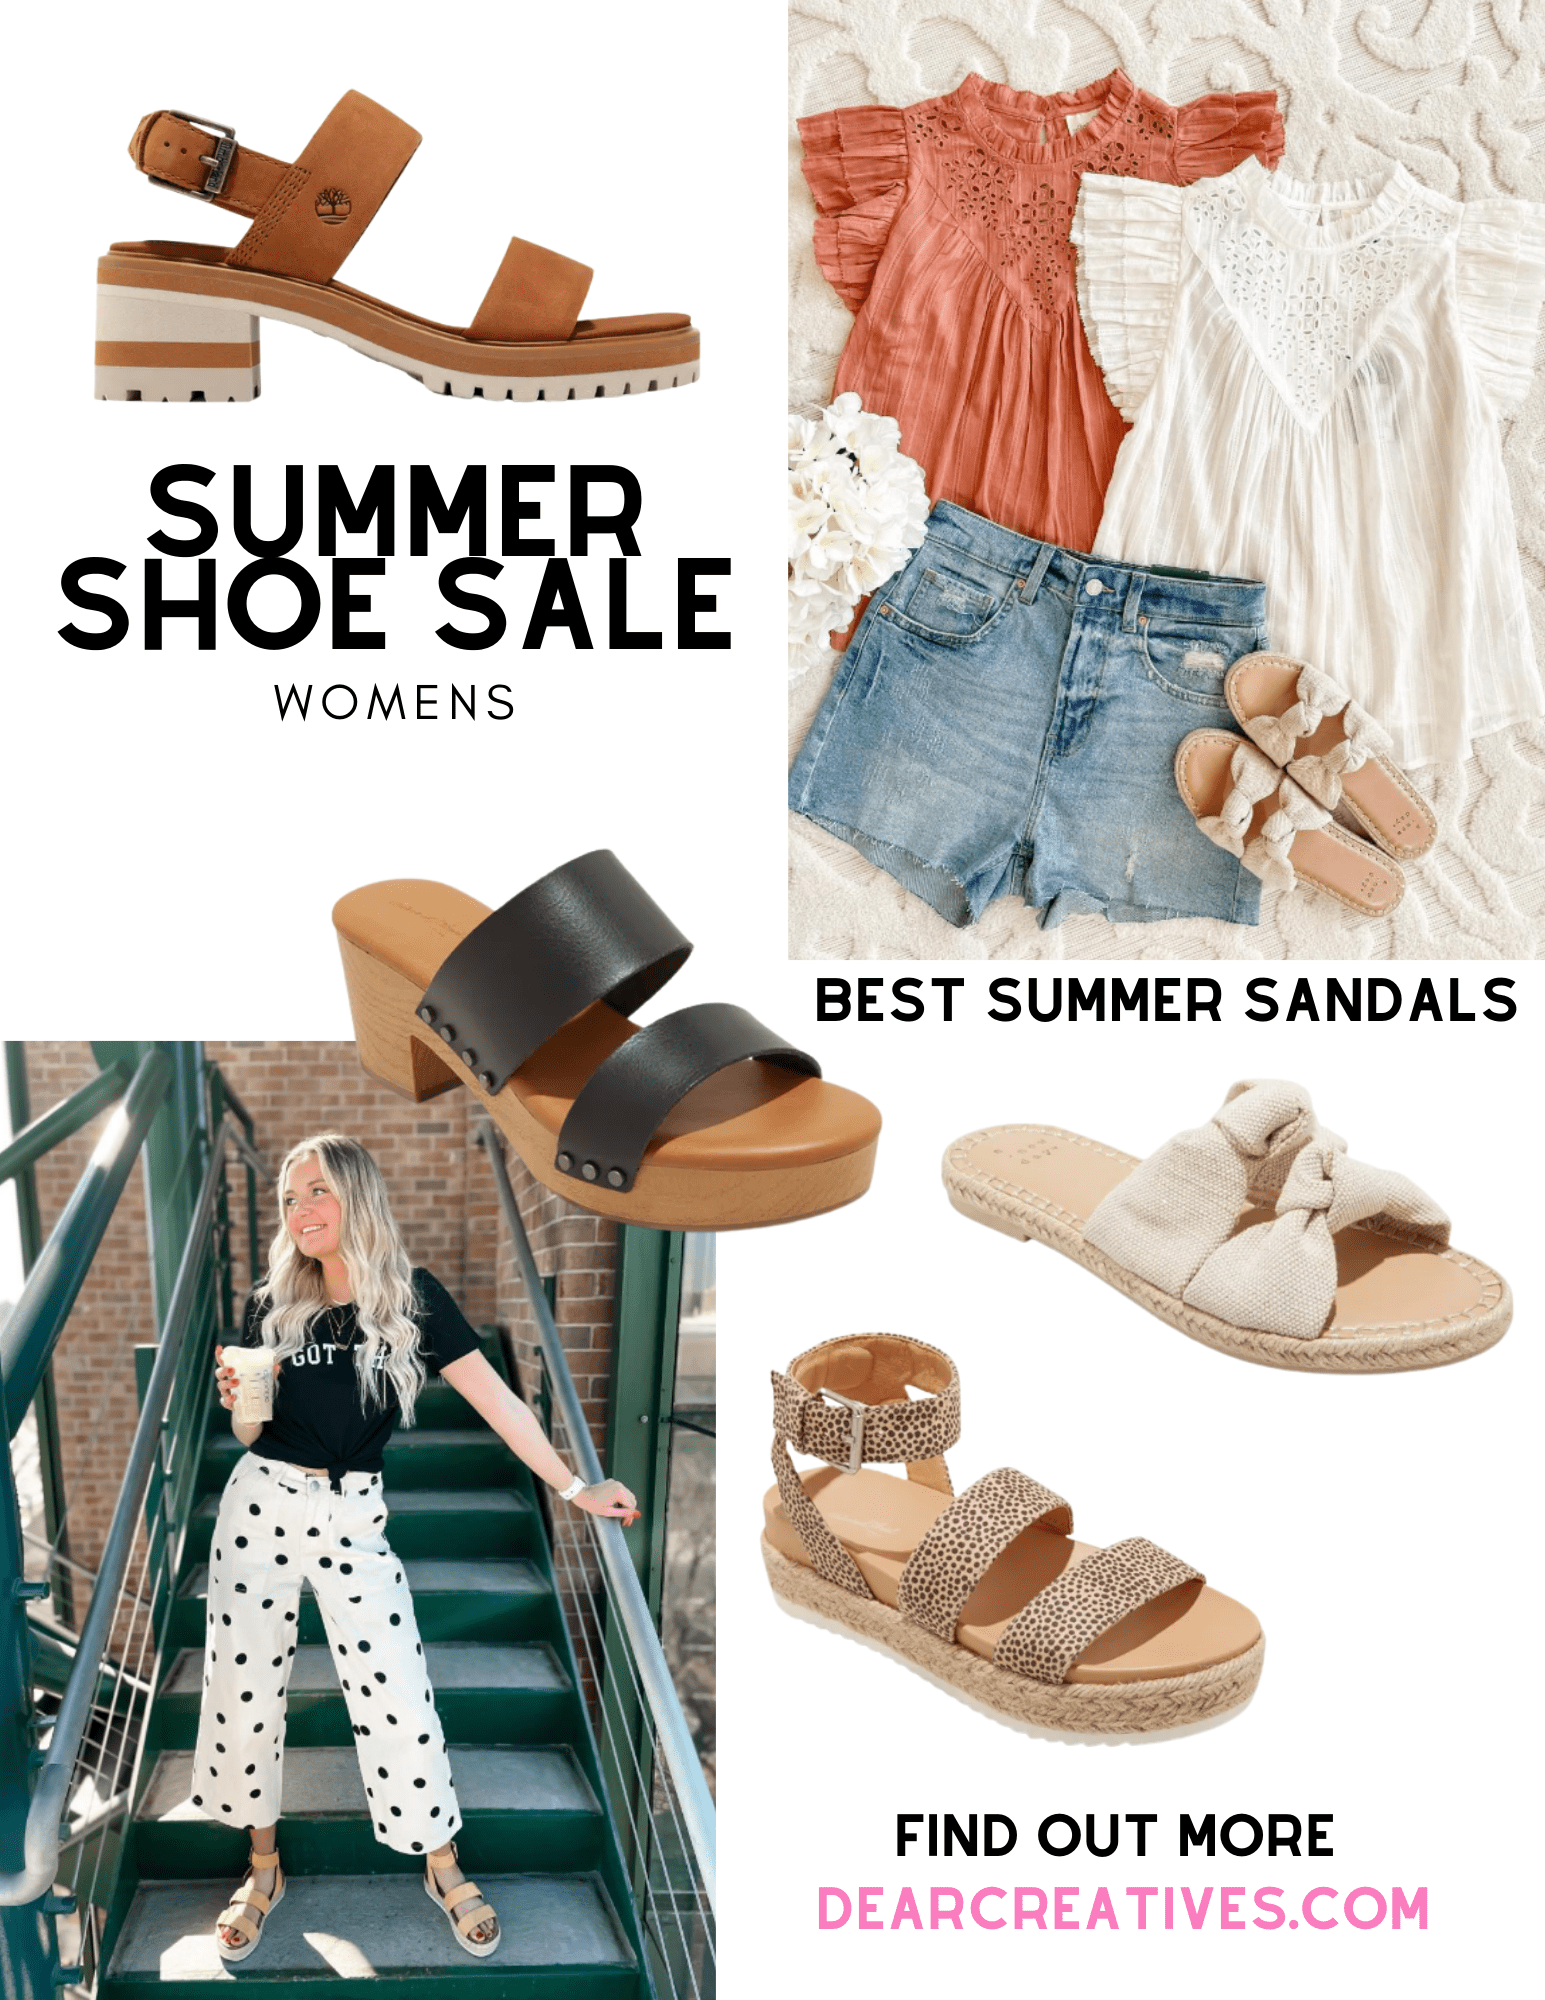 Summer Shoes & Savings You Can't Pass Up!